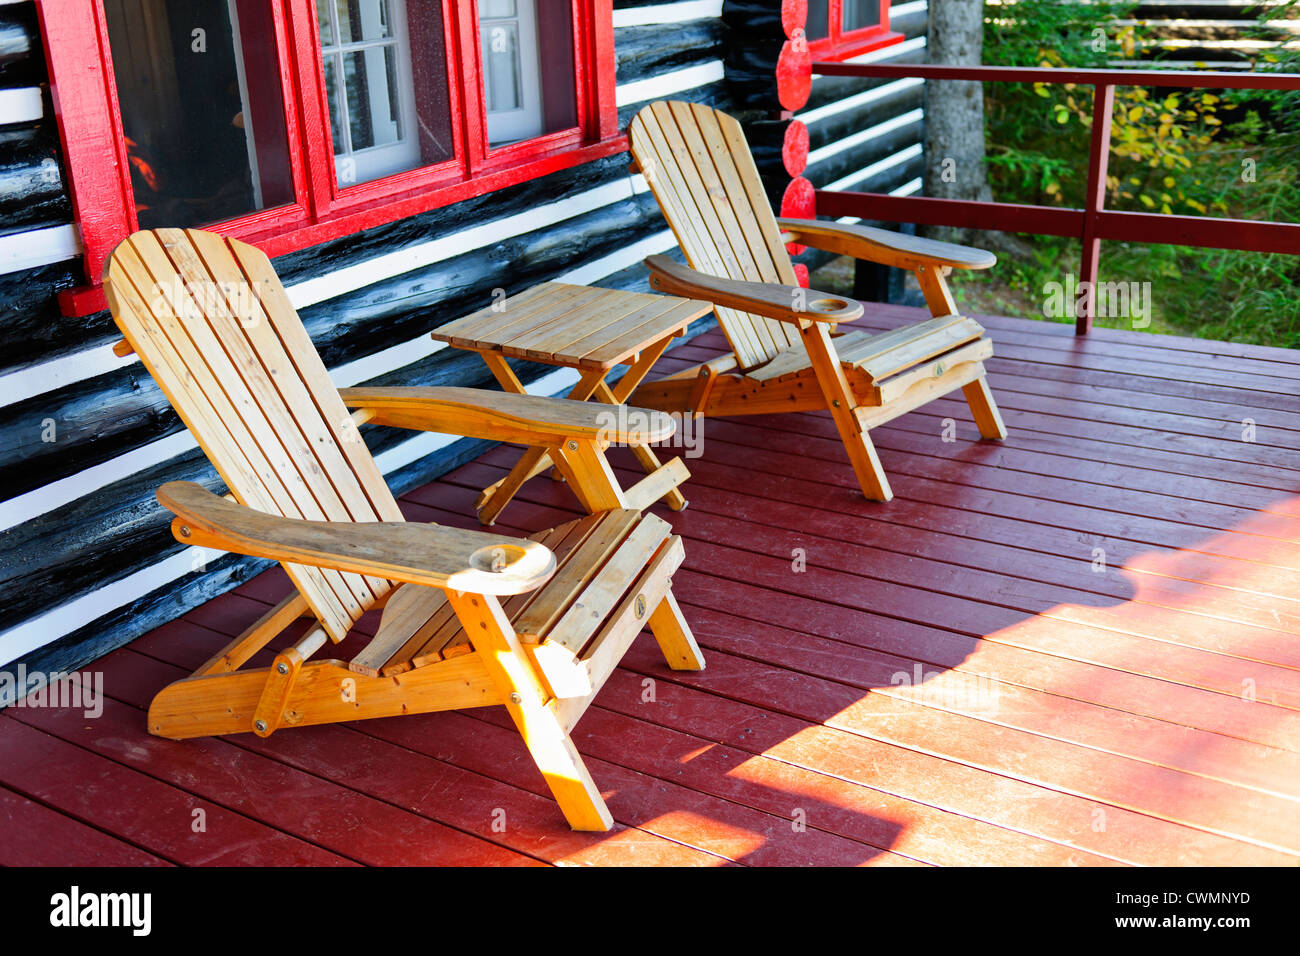 Wooden Log Cabin Cottage Porch With Adirondack Chairs